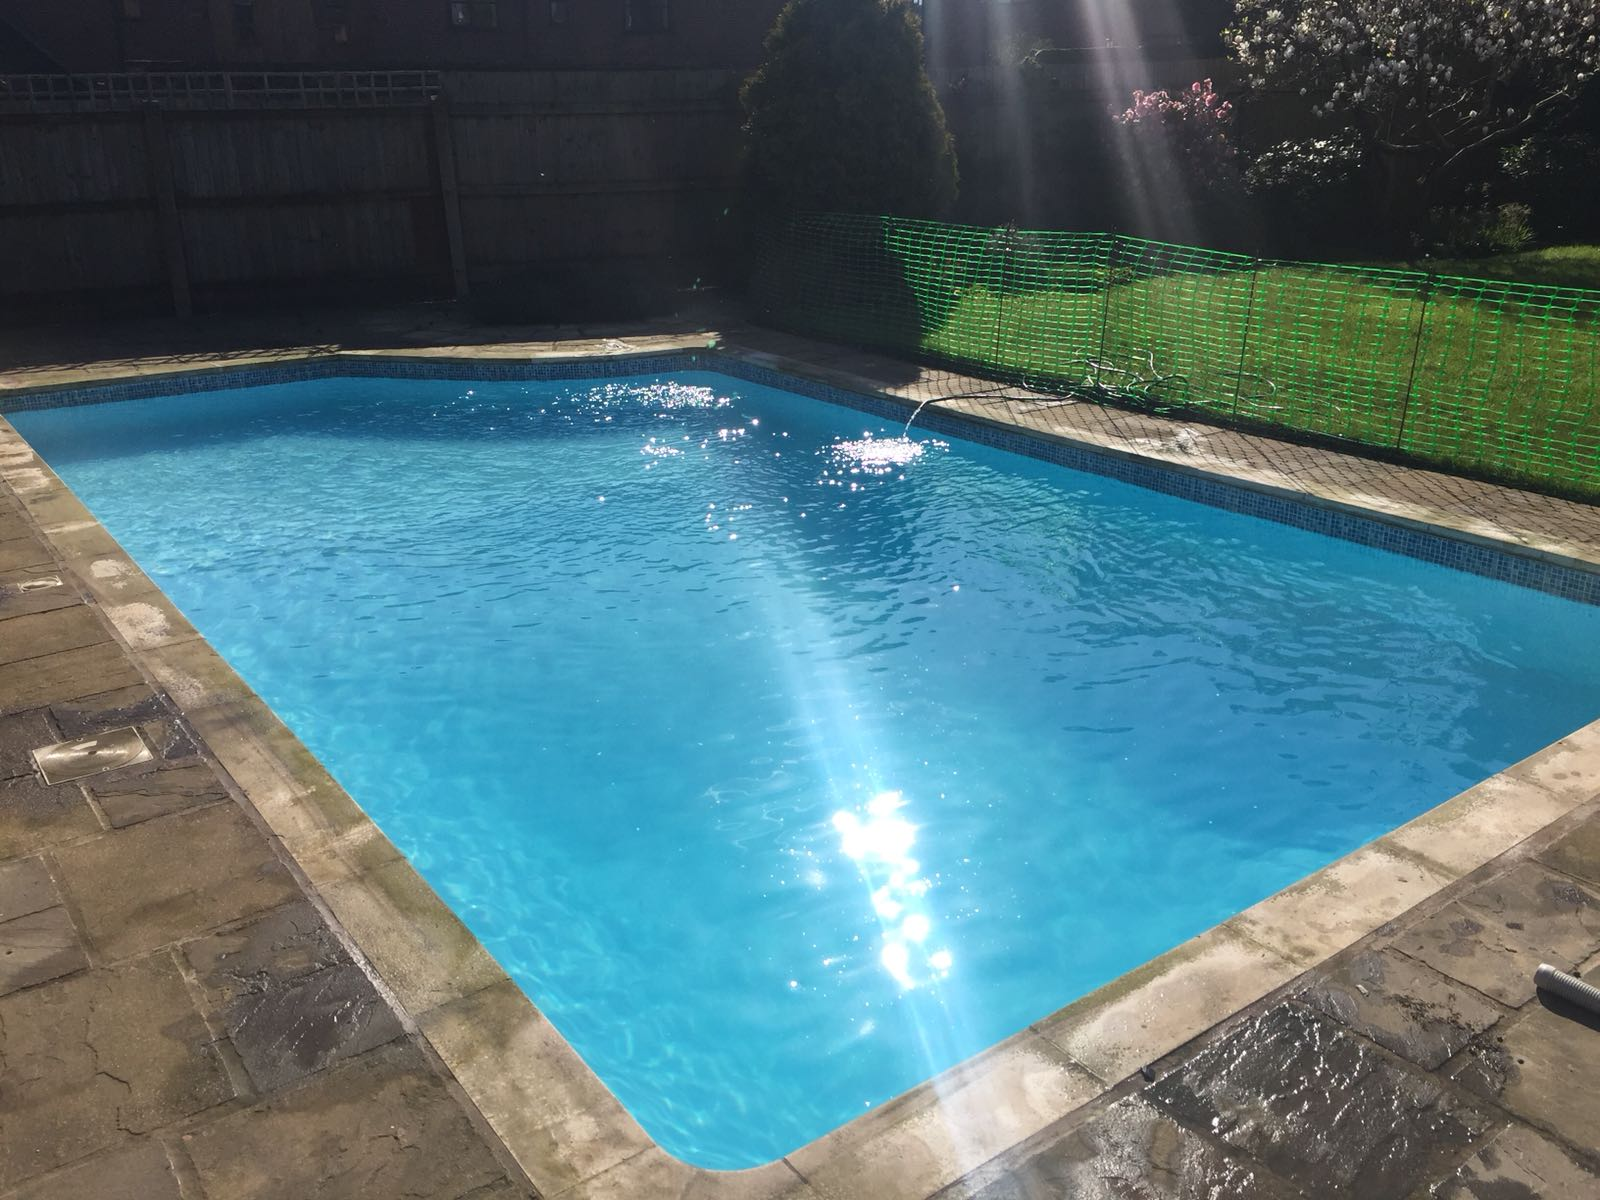 Pool Water is Sparkling after Open